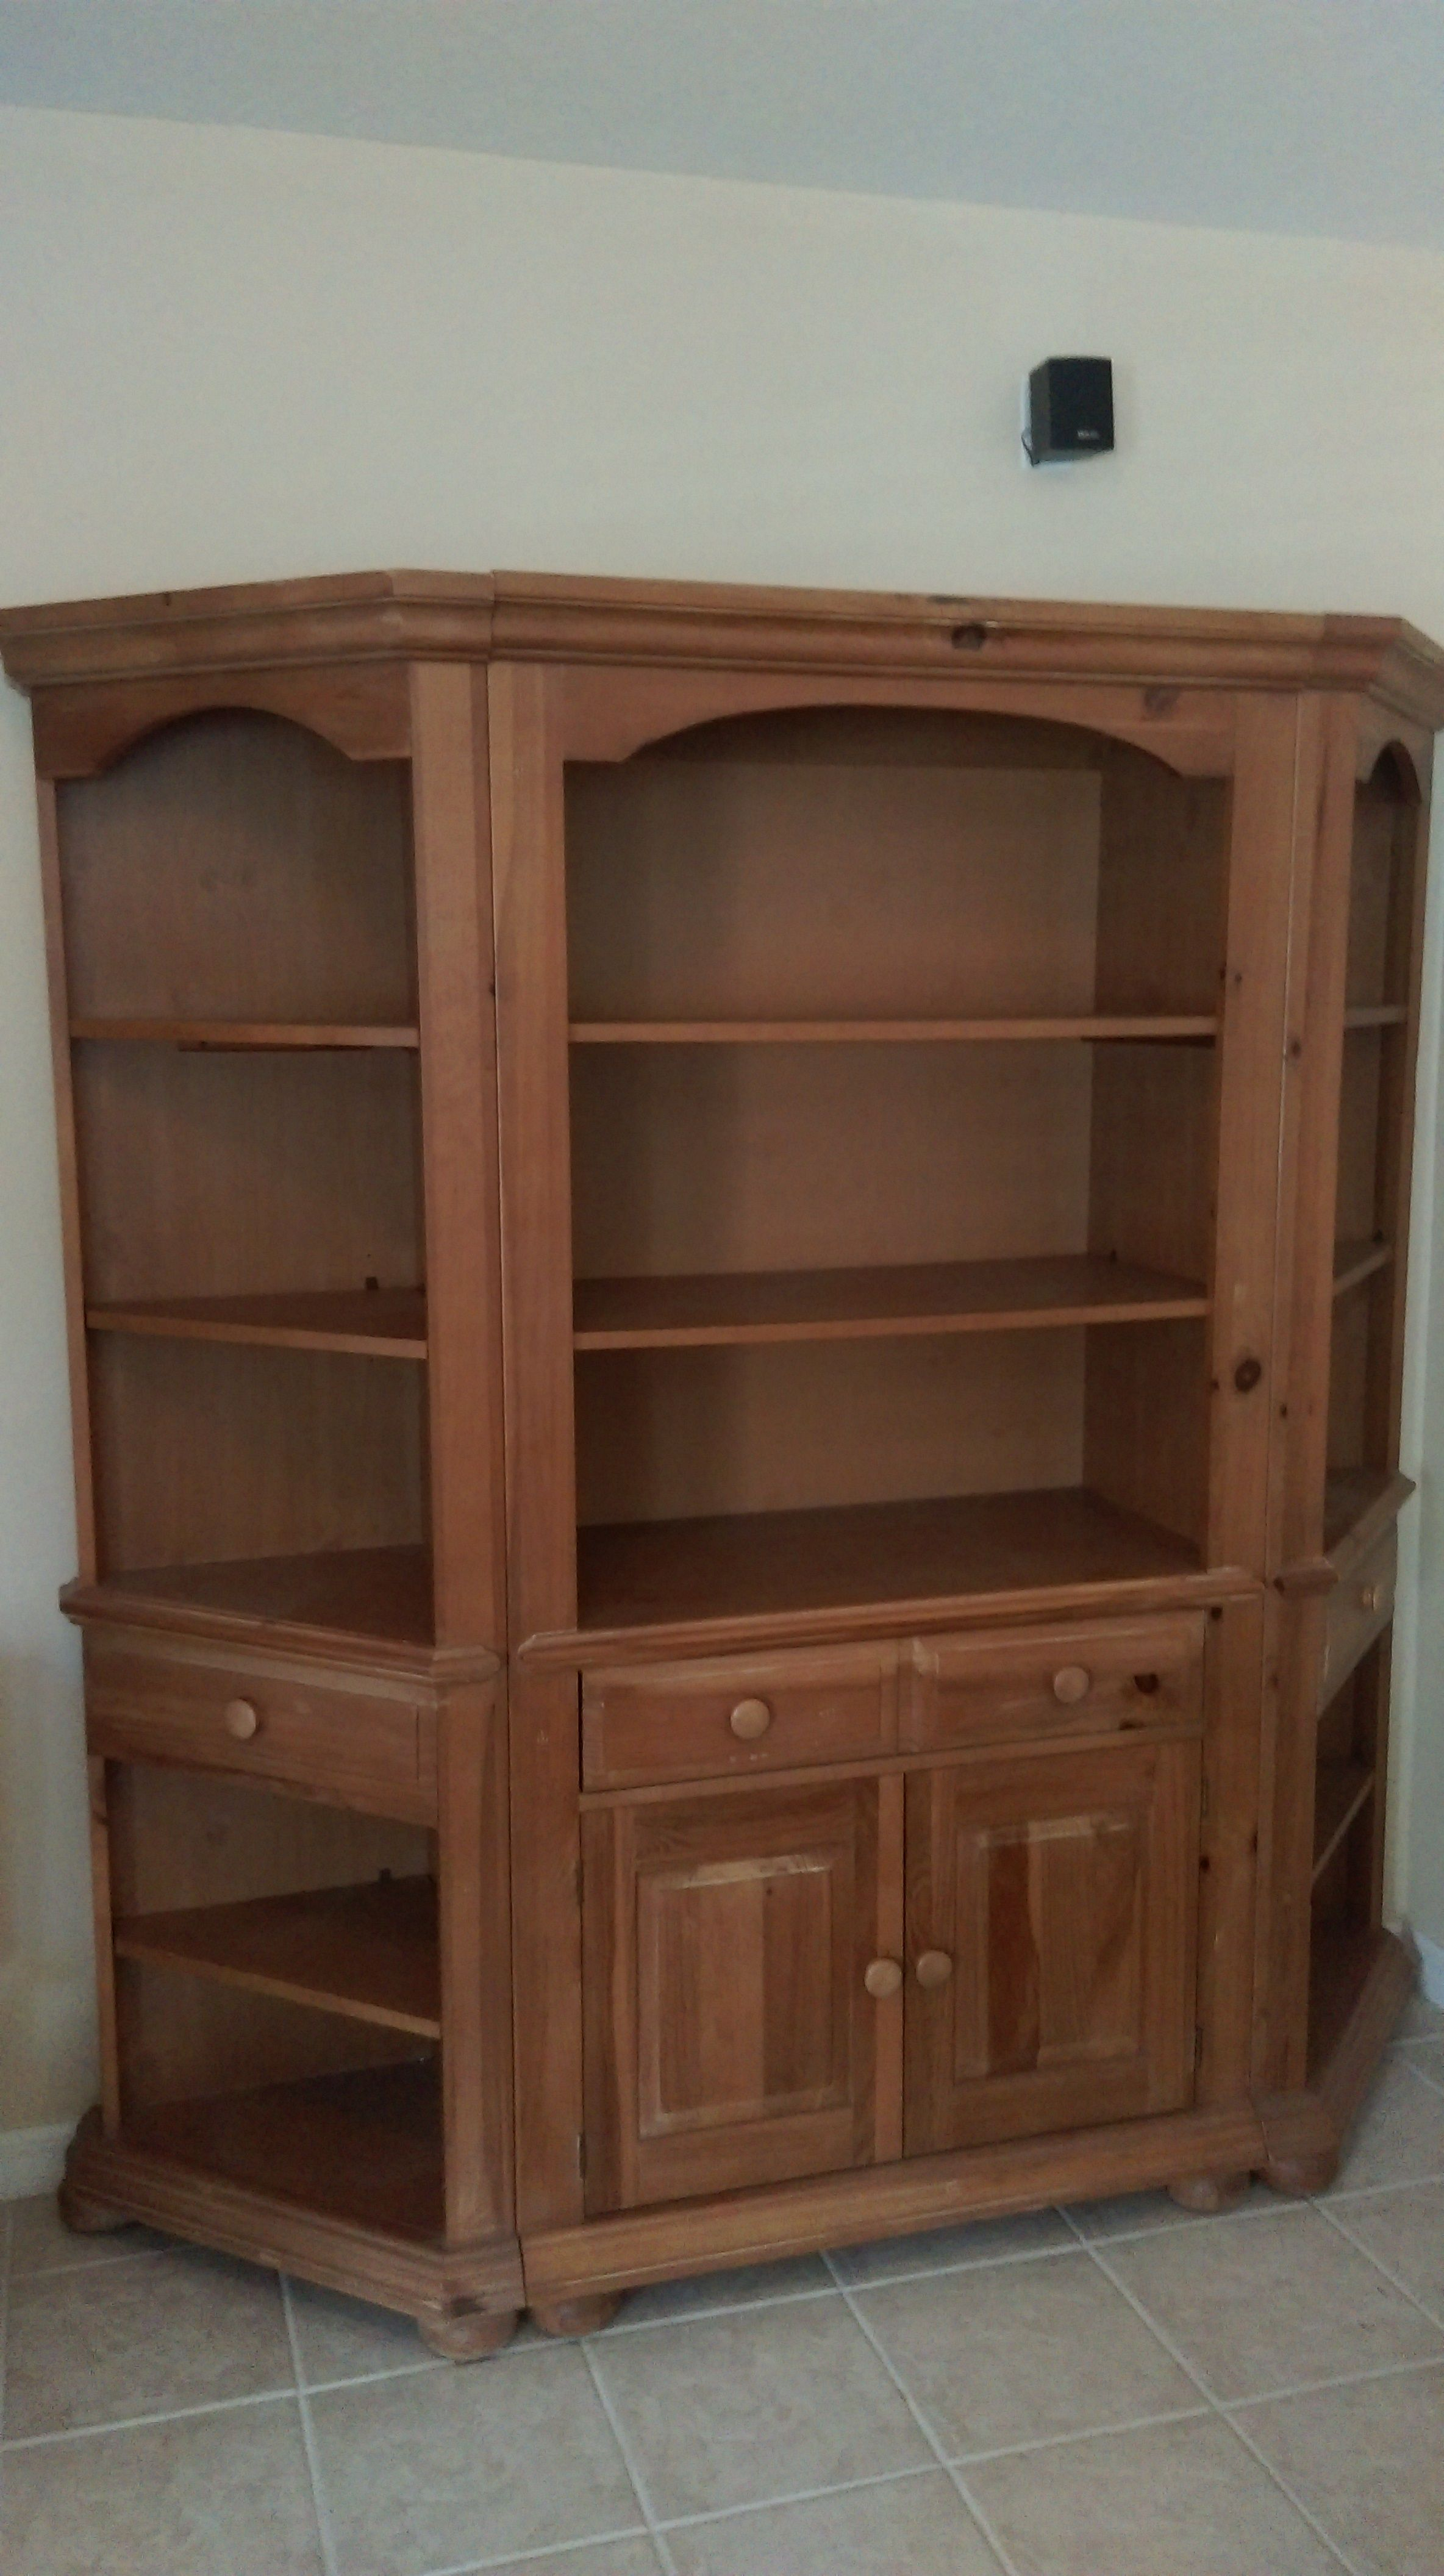 Broyhill Fontana Shelving Unit The Side Shelves Detach And Can Be